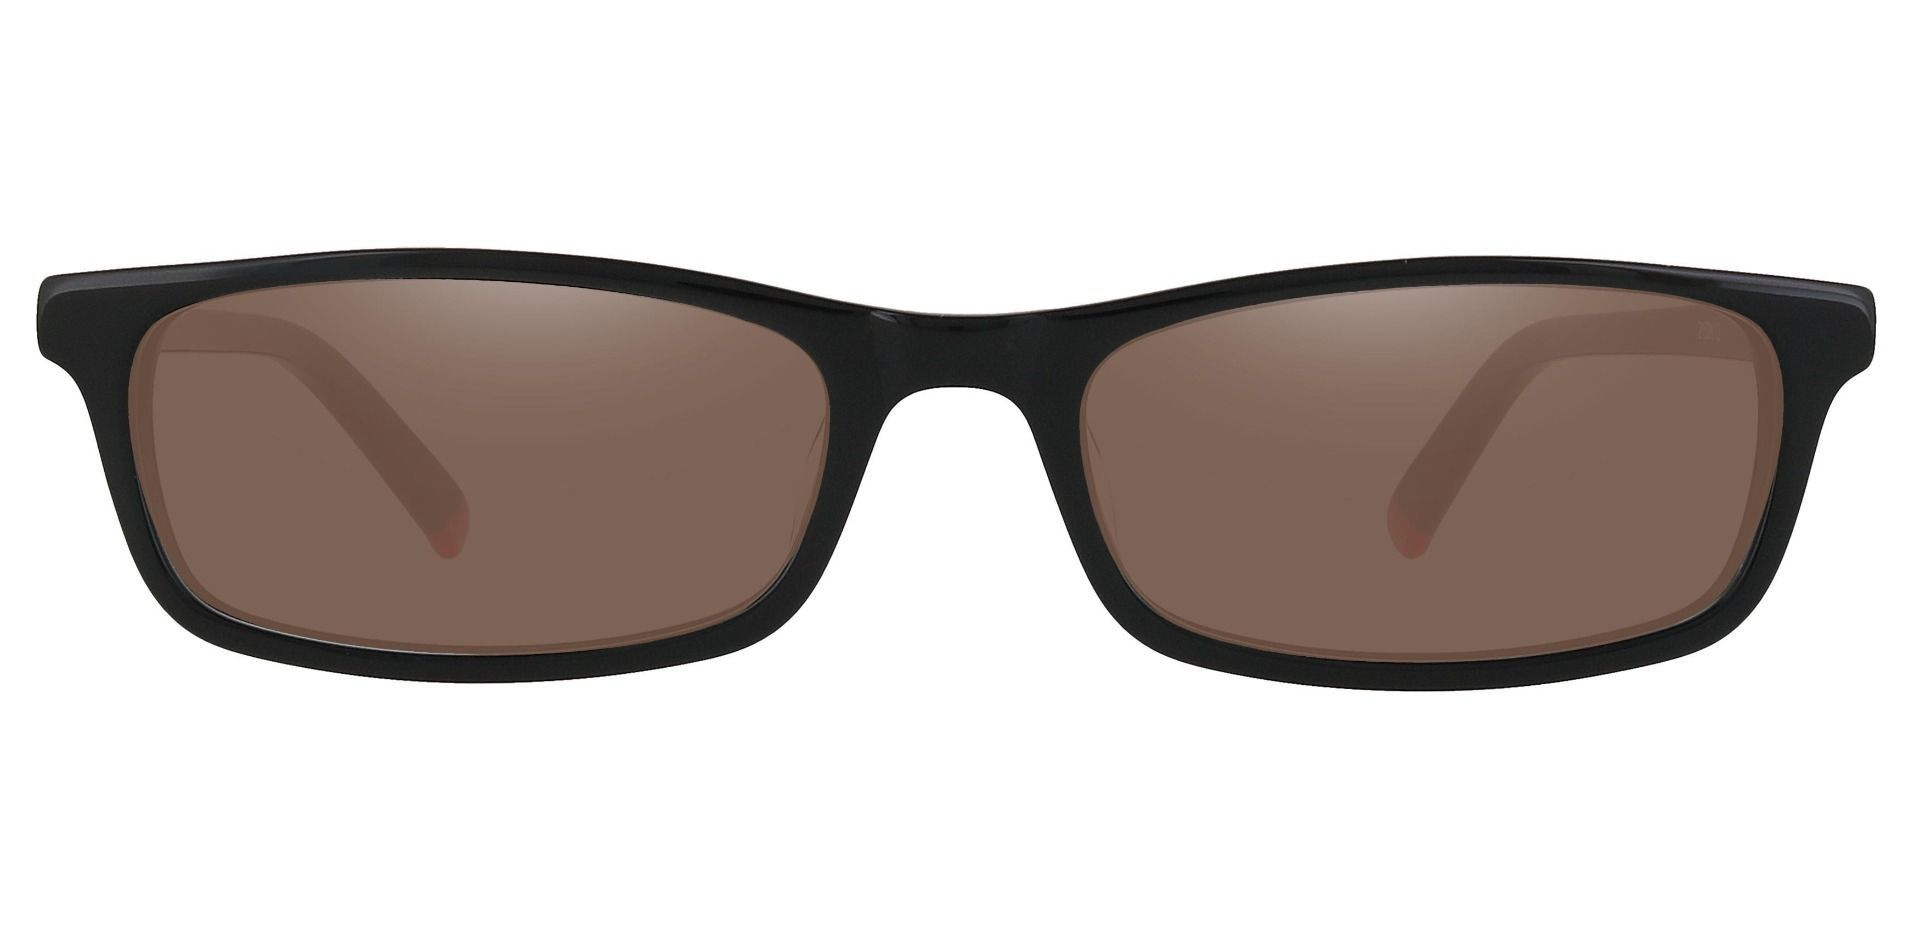 Palisades Rectangle Single Vision Sunglasses - Black Frame With Brown Lenses